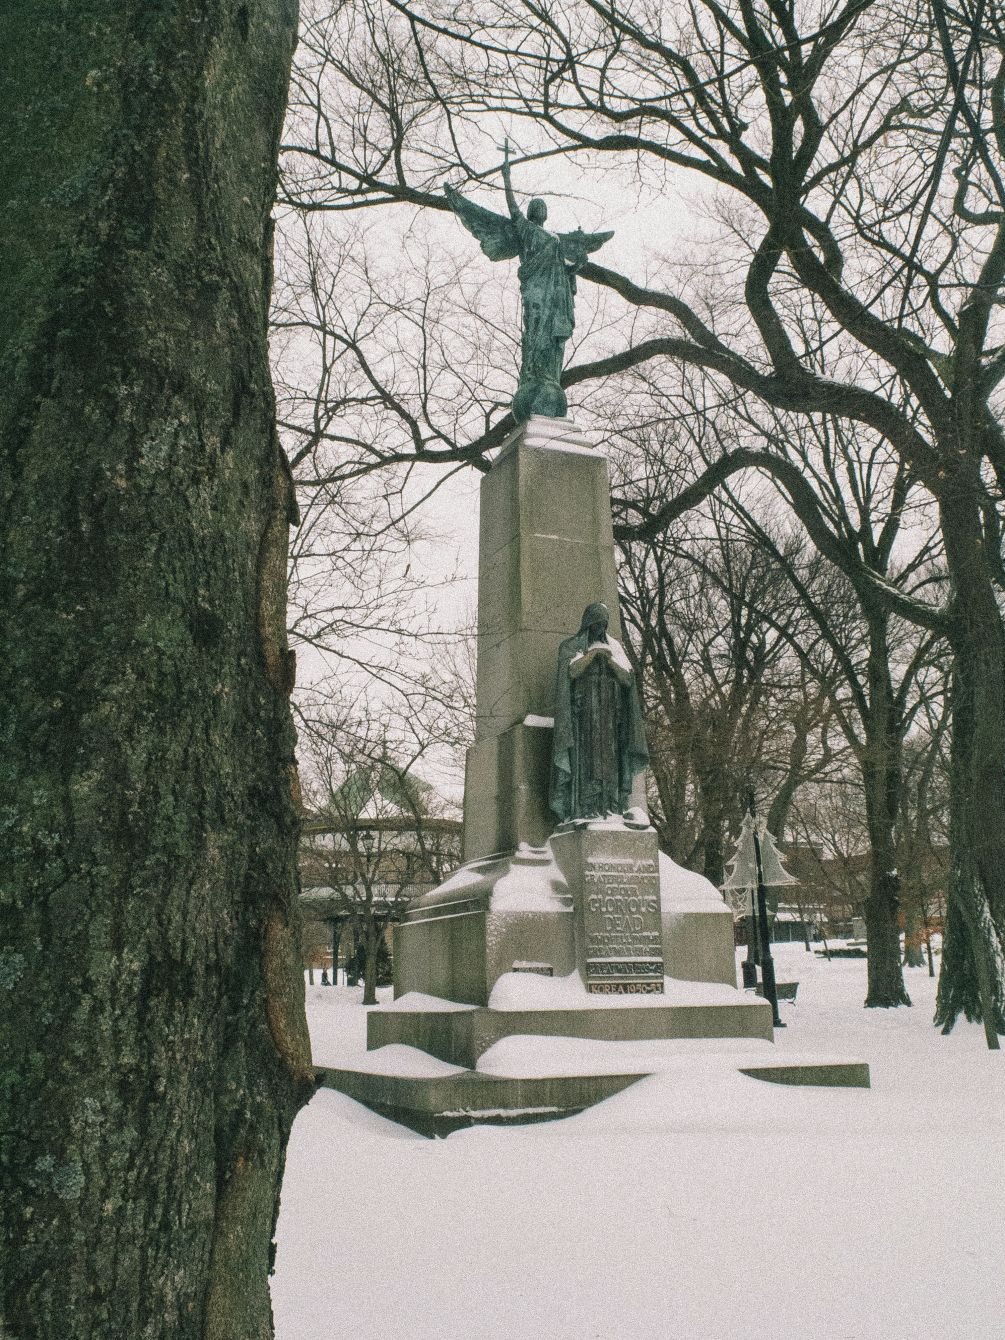 Click thumbnail to see details about photo - The Glorious Dead Statue in Kings Square Snow Saint John Photograph